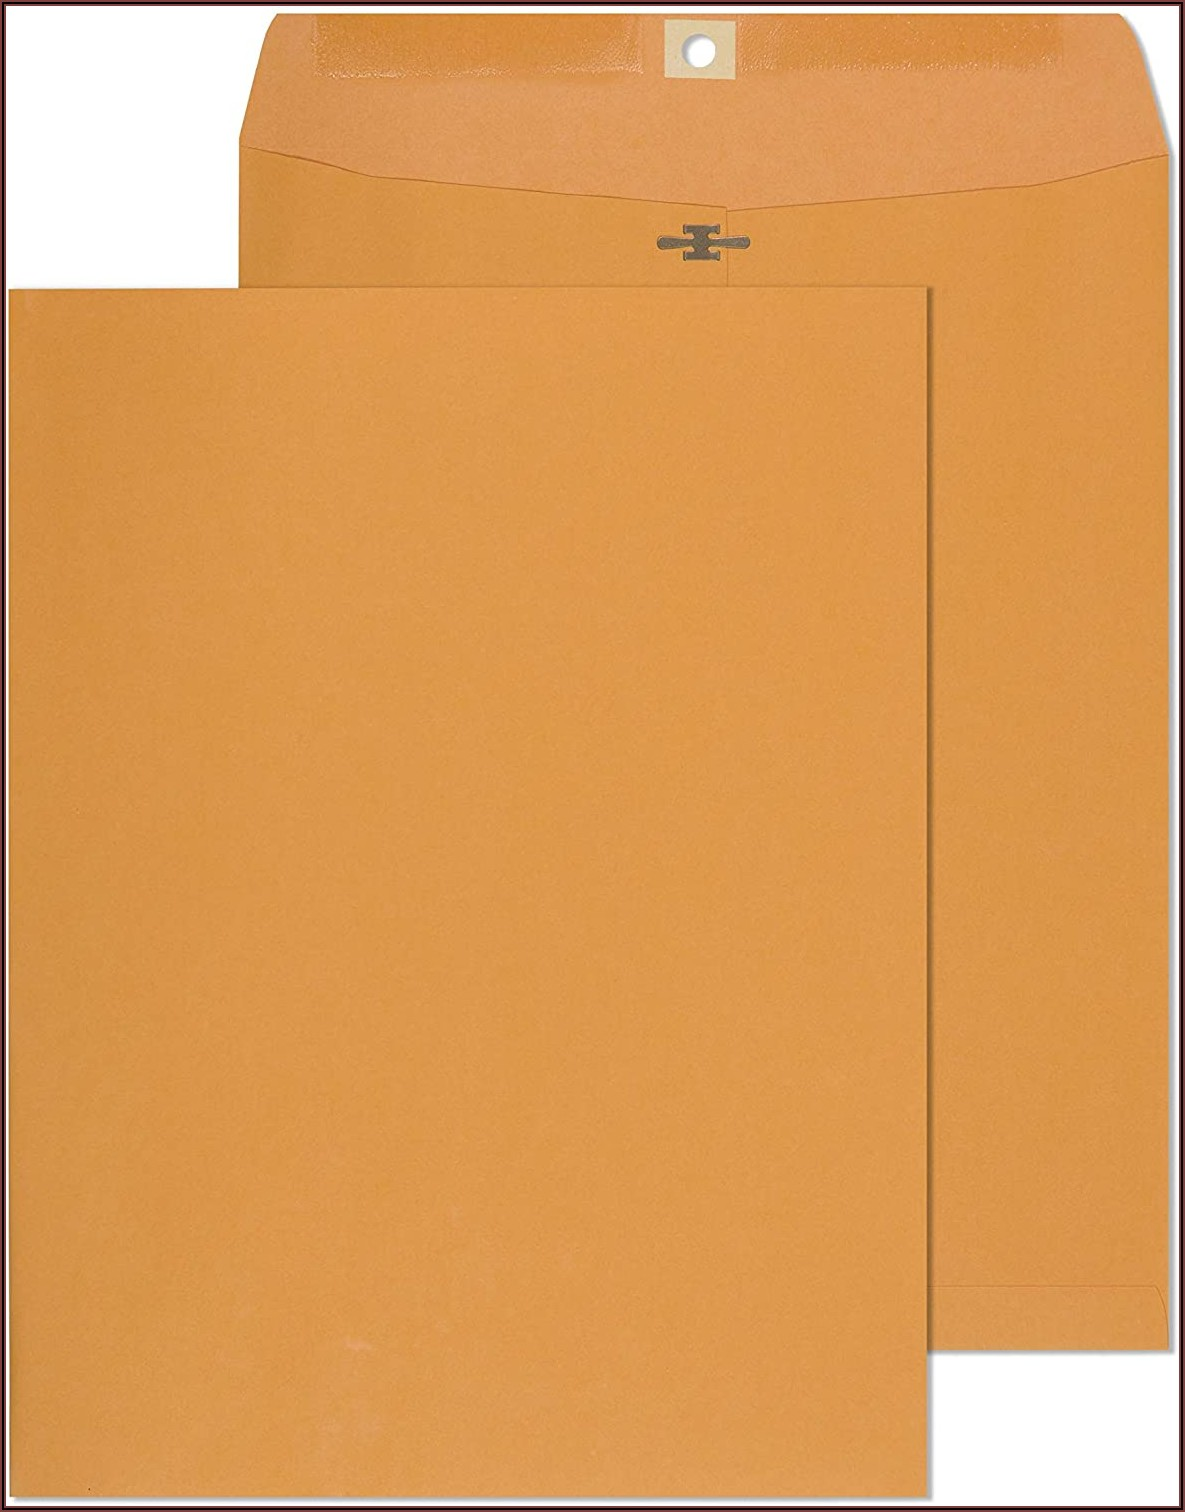 Office Depot 10 X 13 Clasp Envelopes